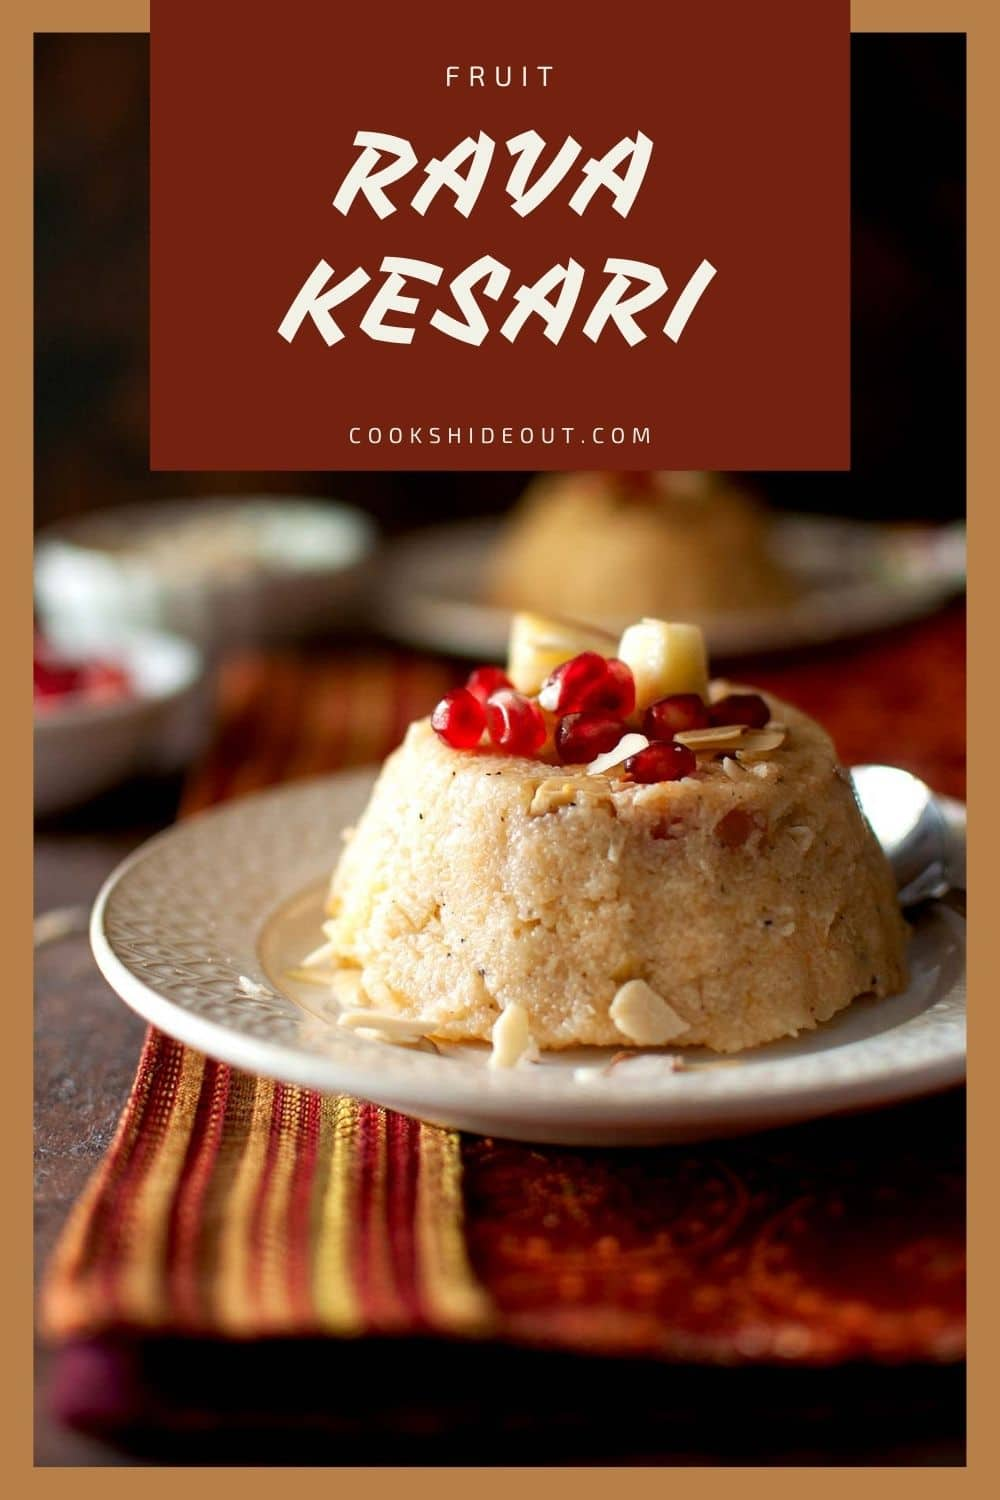 White plate with fruit kesari topped with pomegranate arils